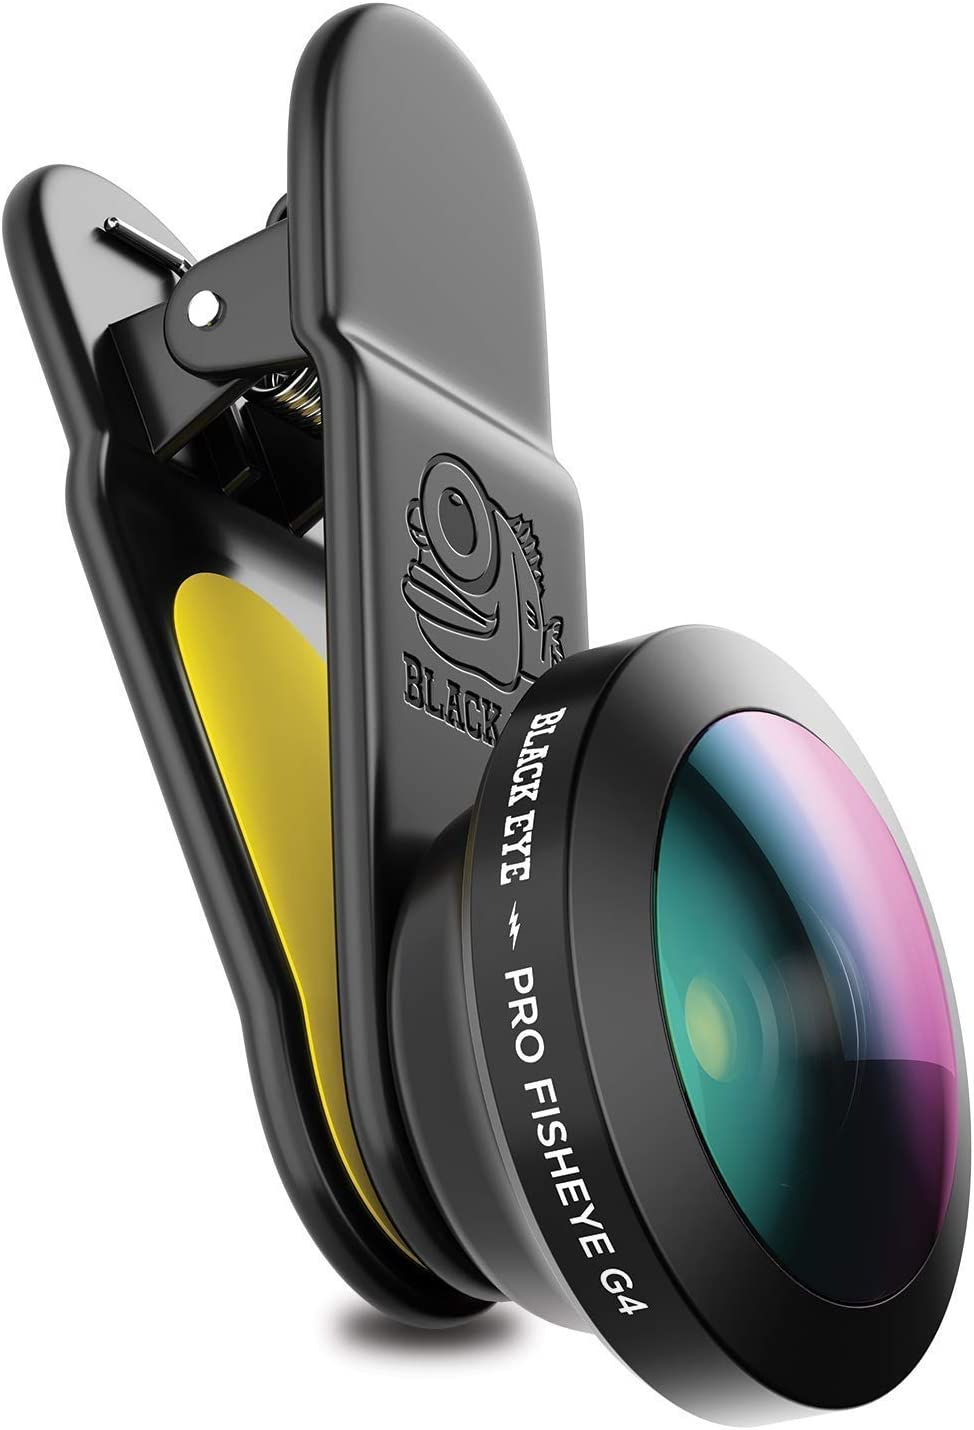 Phone Lenses by Black Eye || Pro Fisheye G4 Phone Camera Lens Compatible with iPhone, iPad, Samsung Galaxy, and All Camera Phone Models - G4FE001